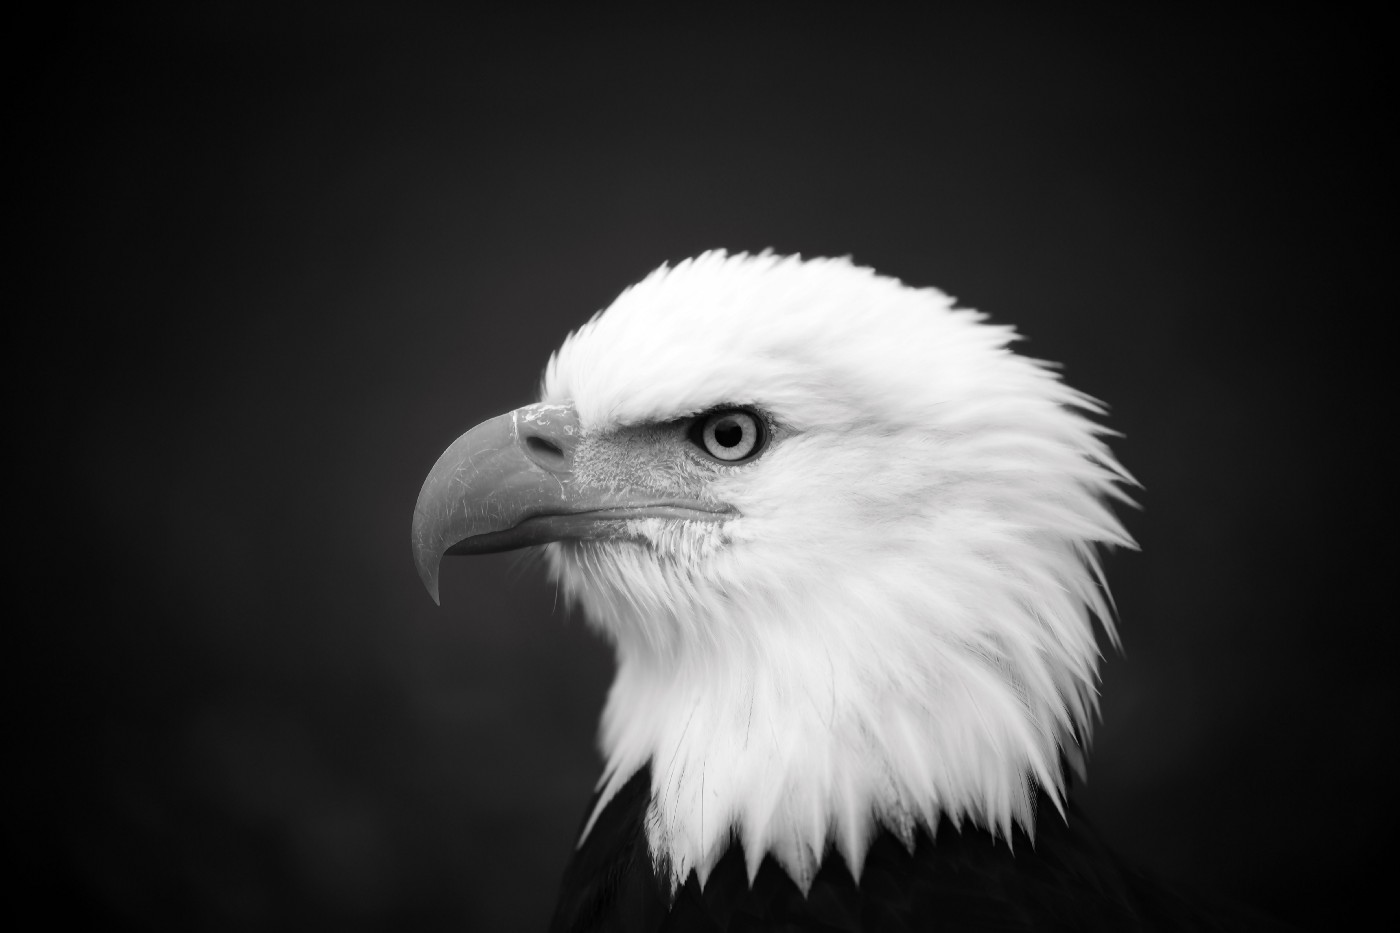 Black and white profile of a bald eagle from shoulders up gazing.